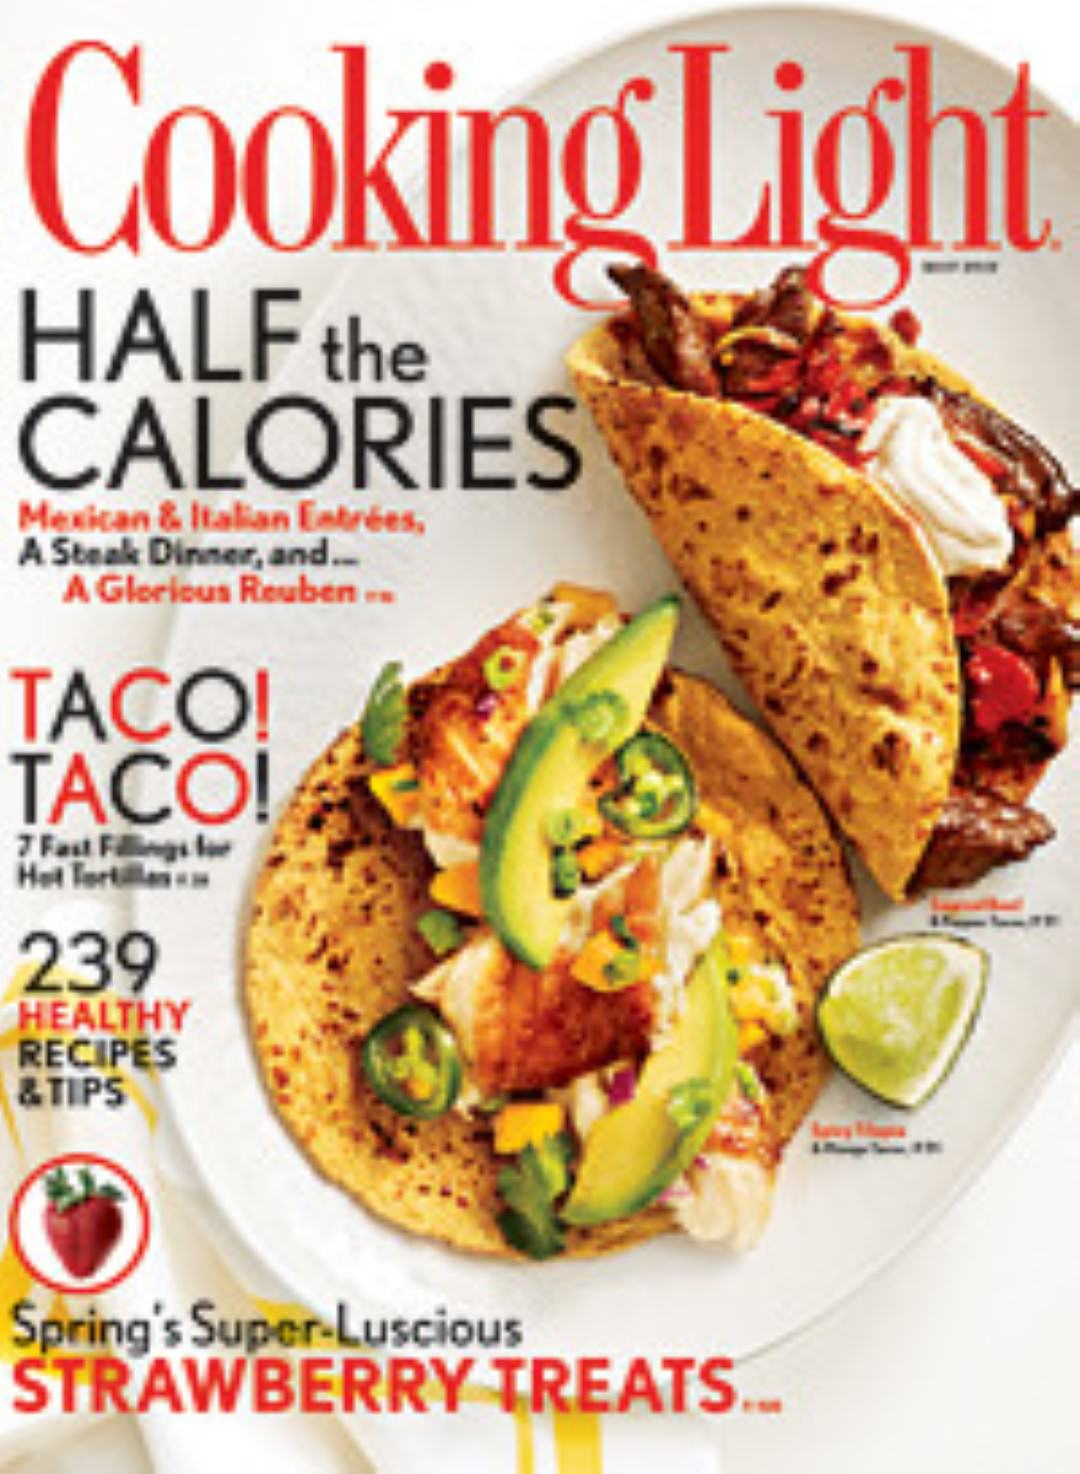 Healthy eating magazines we love three bakers cooking light magazine forumfinder Gallery